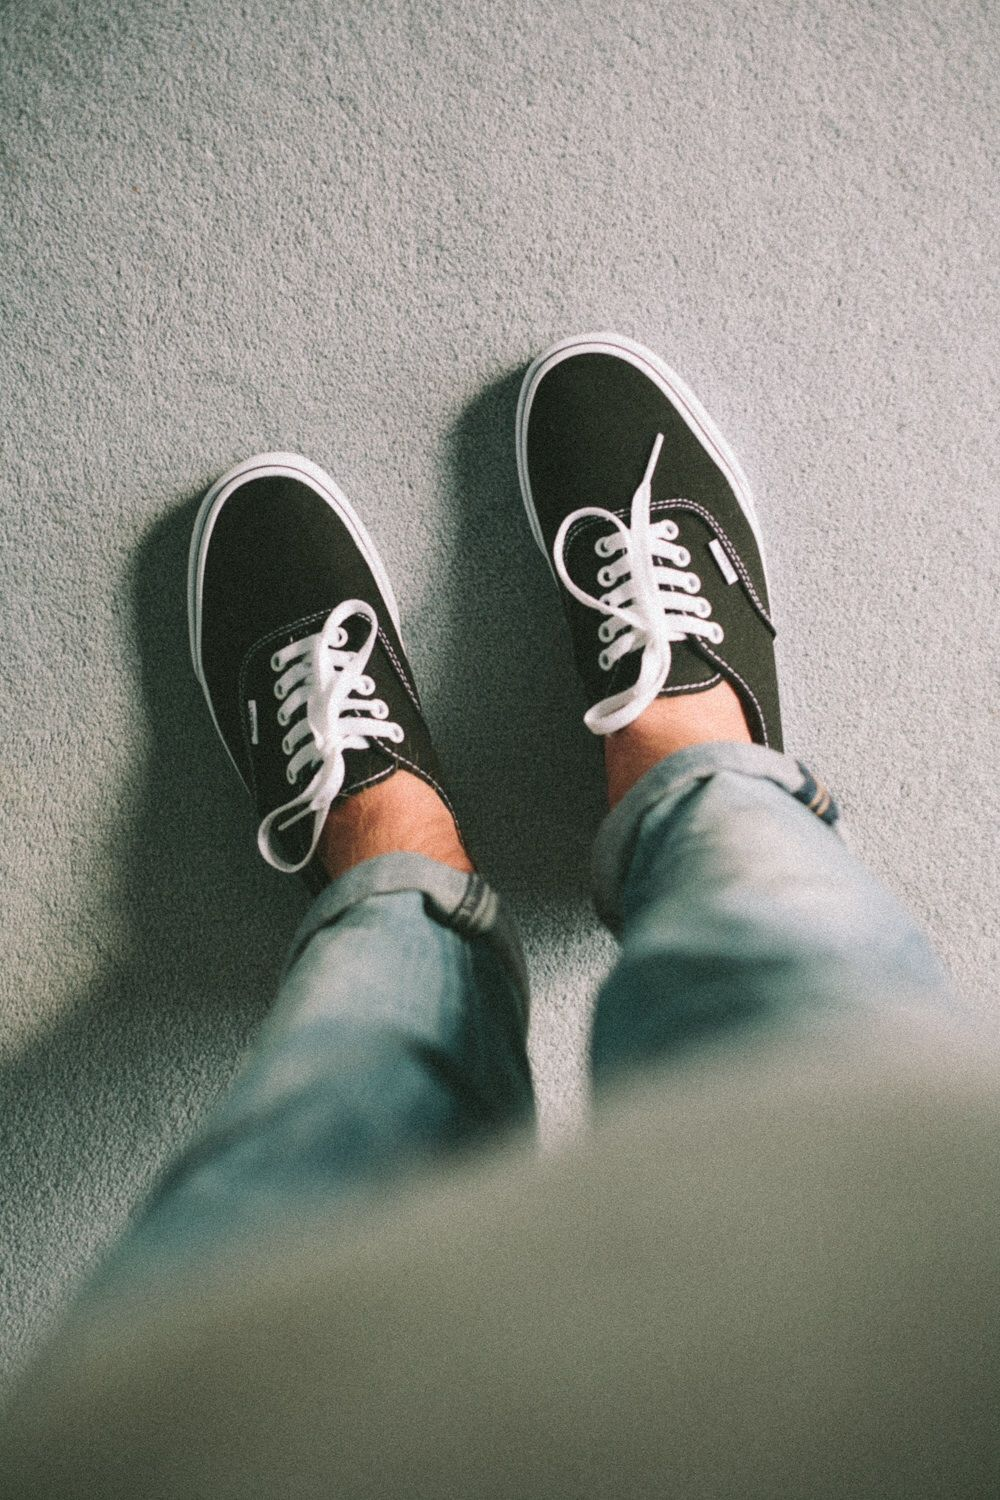 Jeans and vans